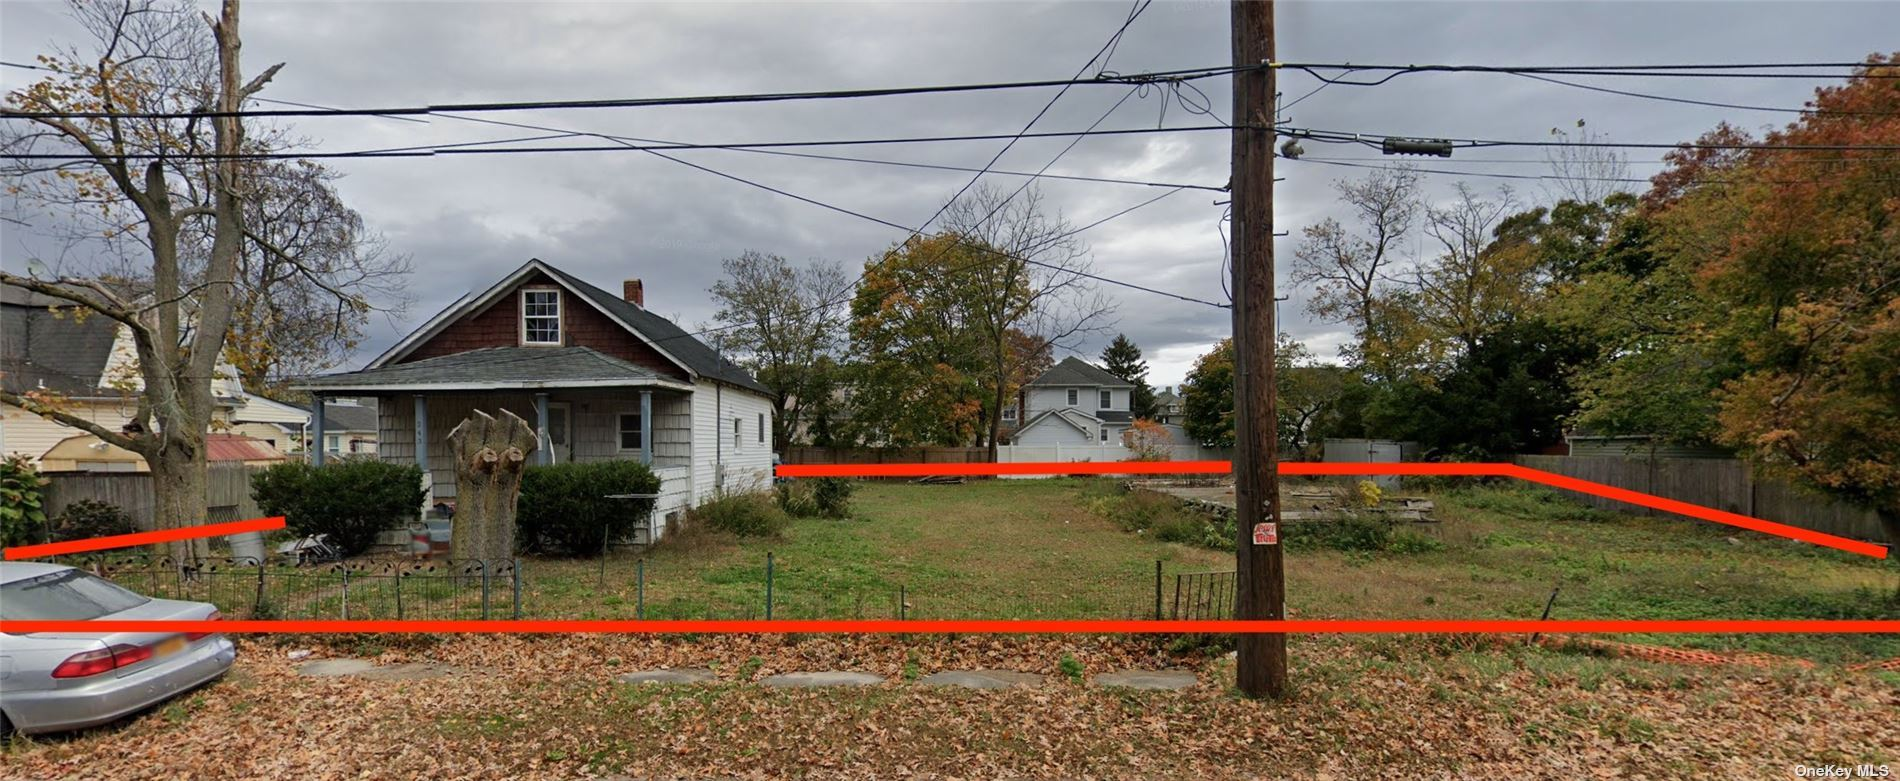 243 & 247 West Ave Avenue, Patchogue, NY 11772 - MLS#: 3320271